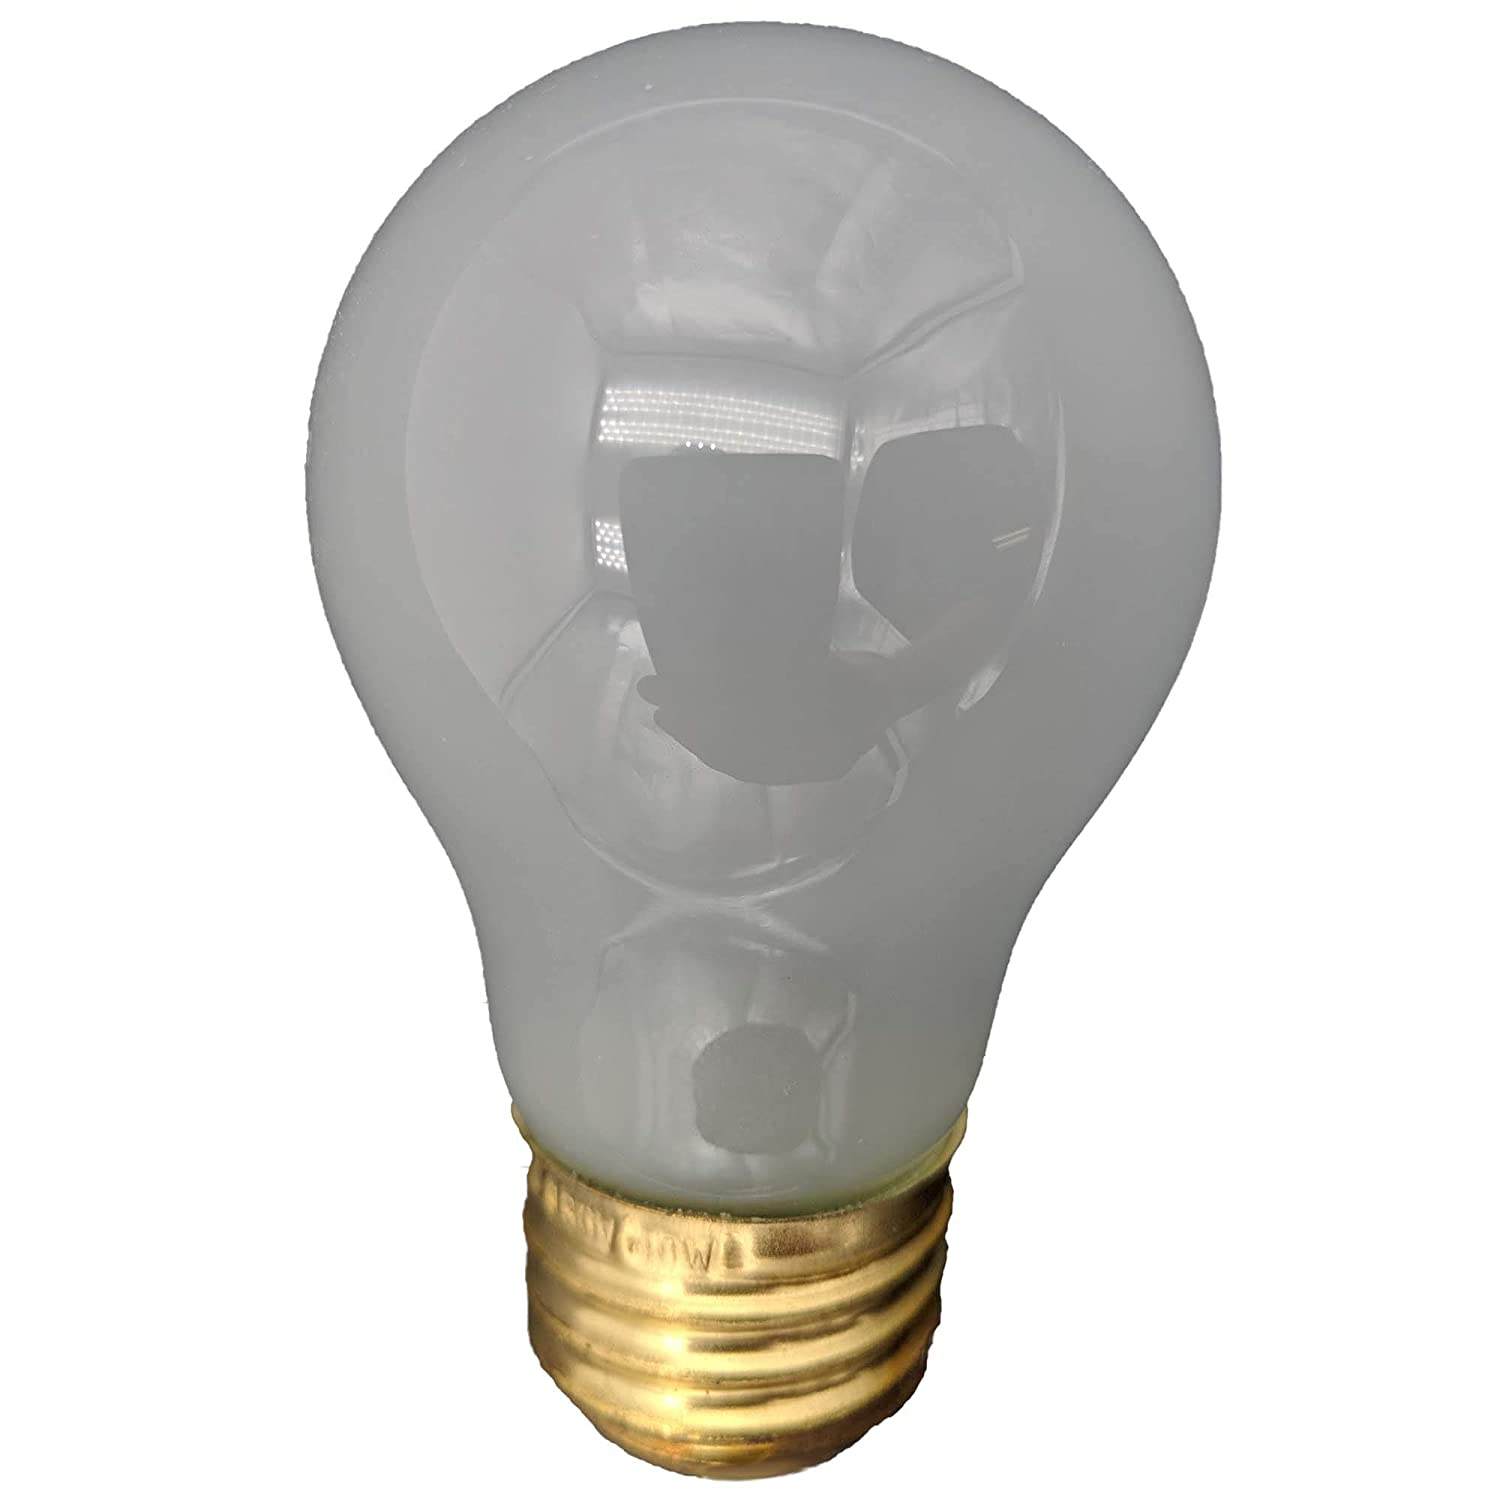 Supplying Demand 5303013071 Oven Light Bulb 130 Volt 40 Watt Fits 316538901